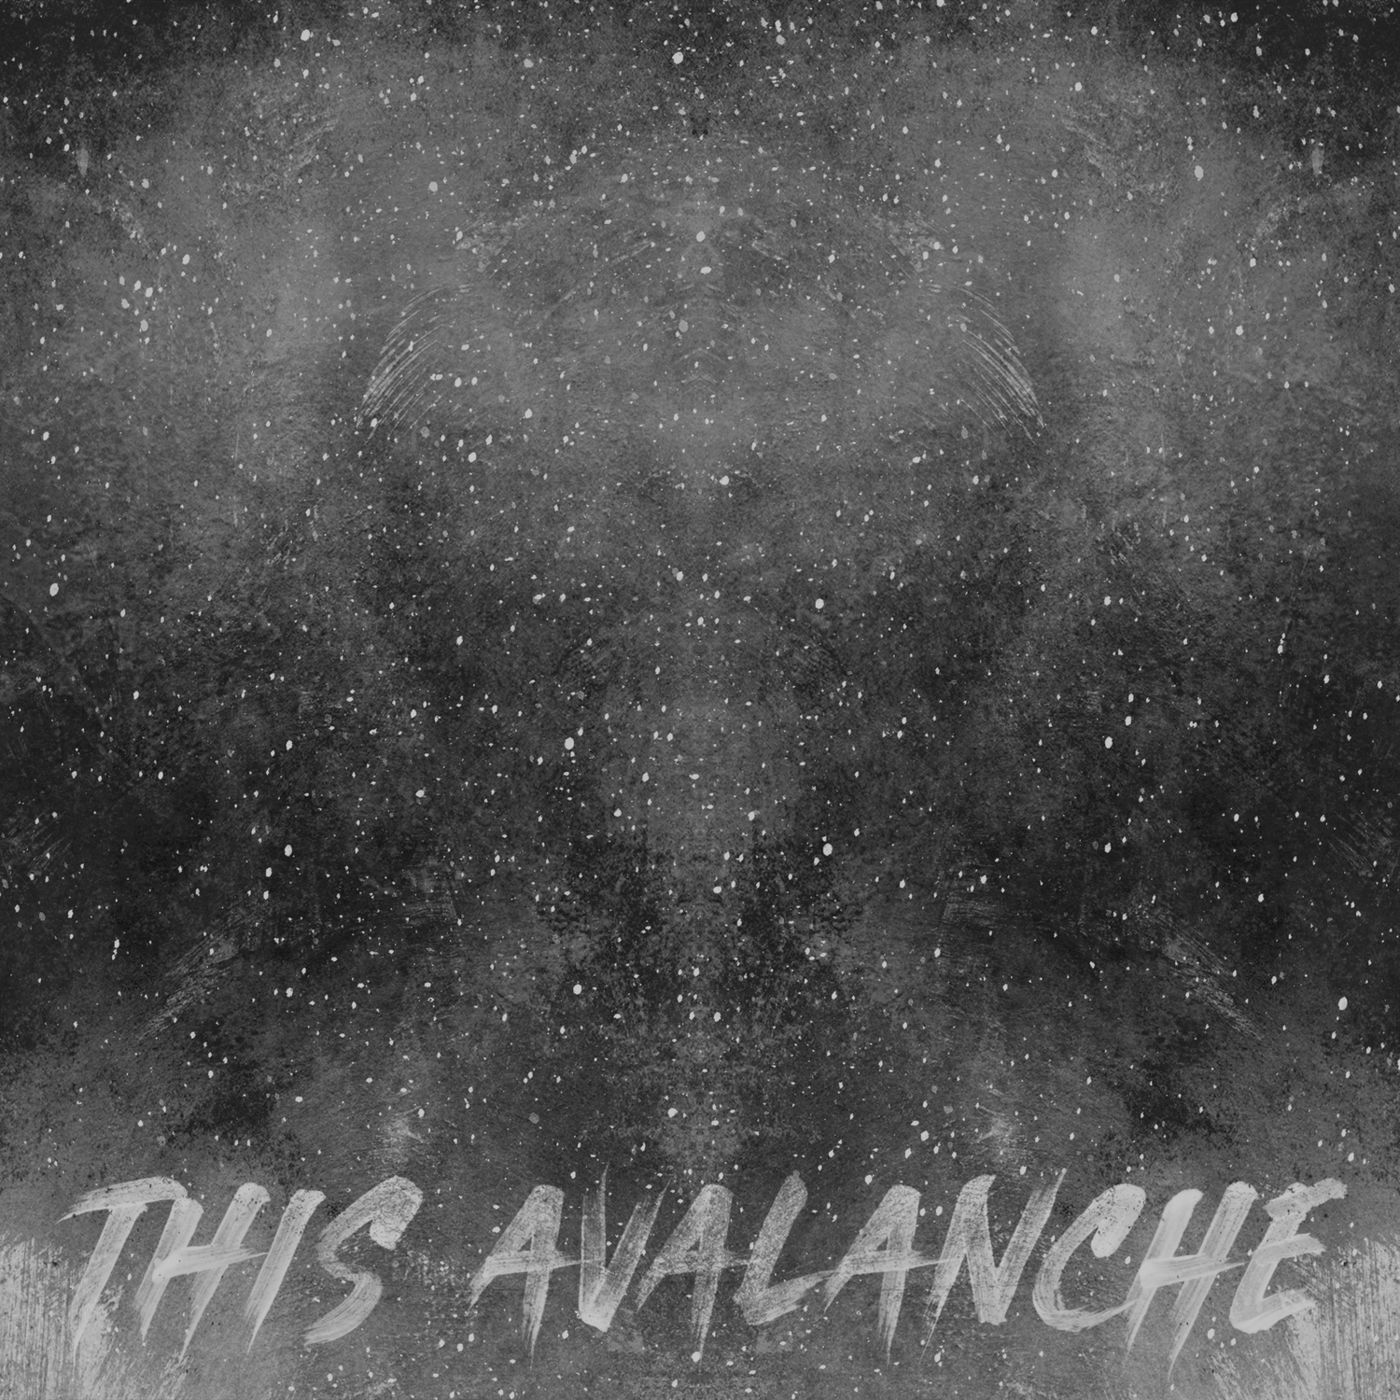 Empyrean Lights - This Avalanche [single] (2019)